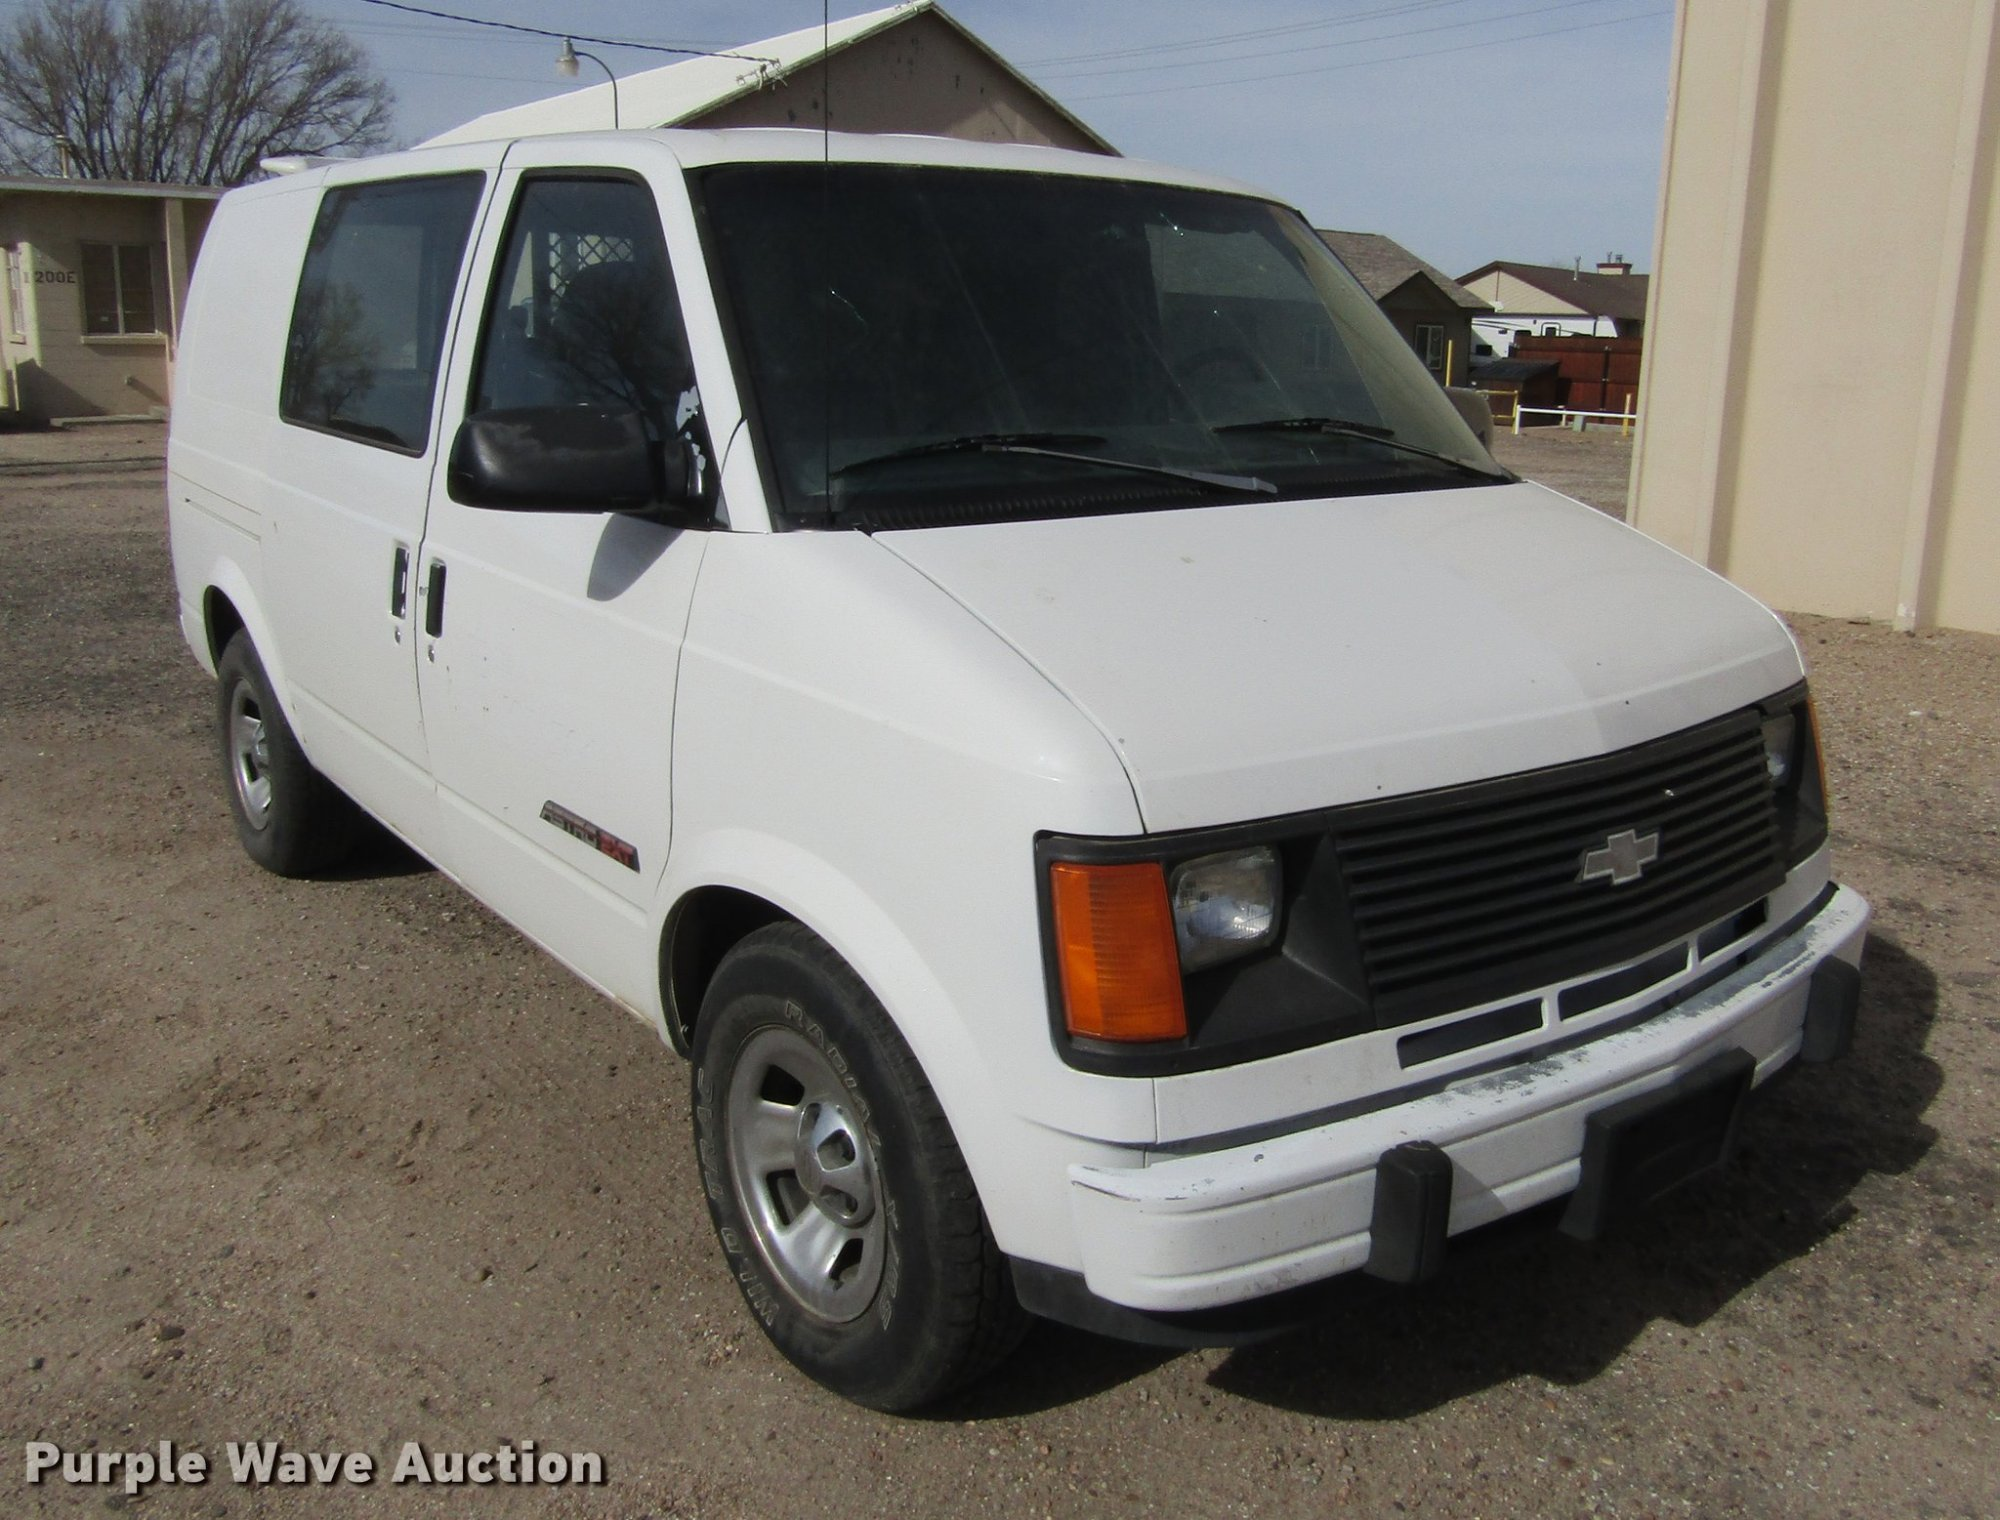 hight resolution of dc8263 image for item dc8263 1992 chevrolet astro cargo ext van